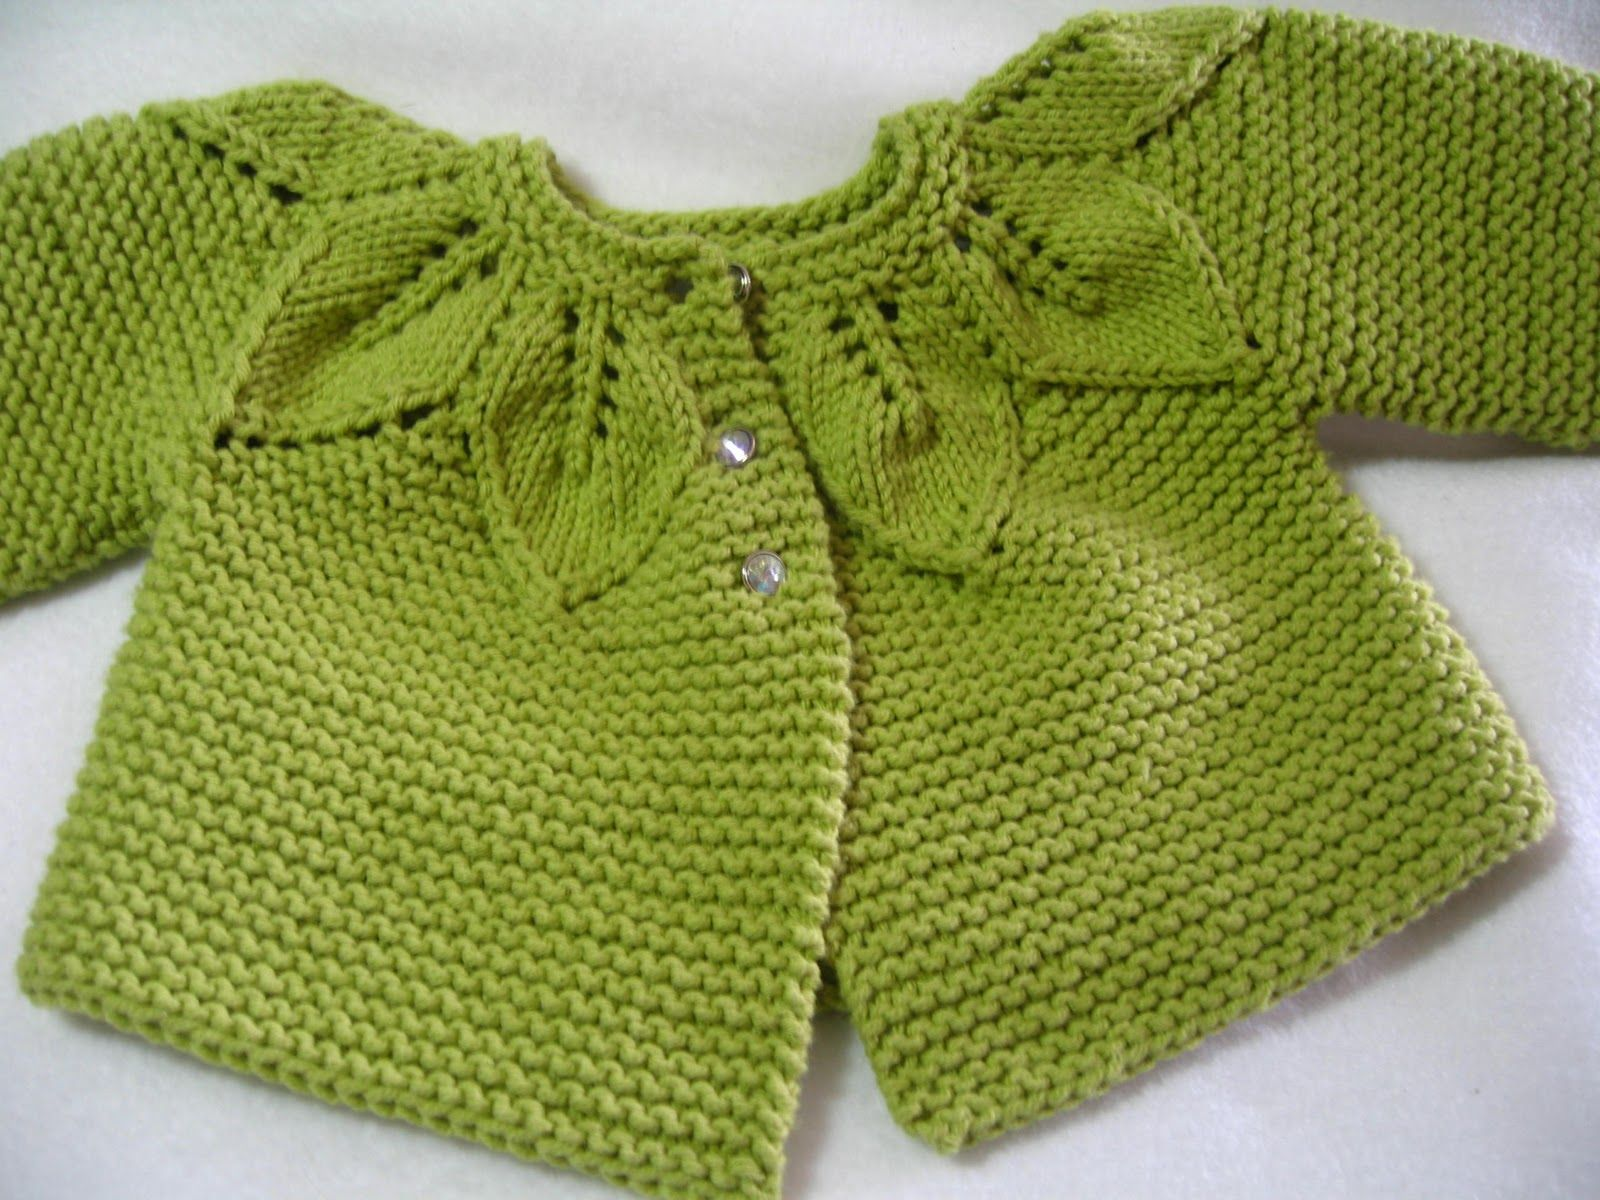 Baby sweater knitting pattern pattern knit lace leaves pattern knit lace leaves leisure arts yarn lion brand cotton ease needles size 5 7 i went up one size erratas for this patt bankloansurffo Choice Image